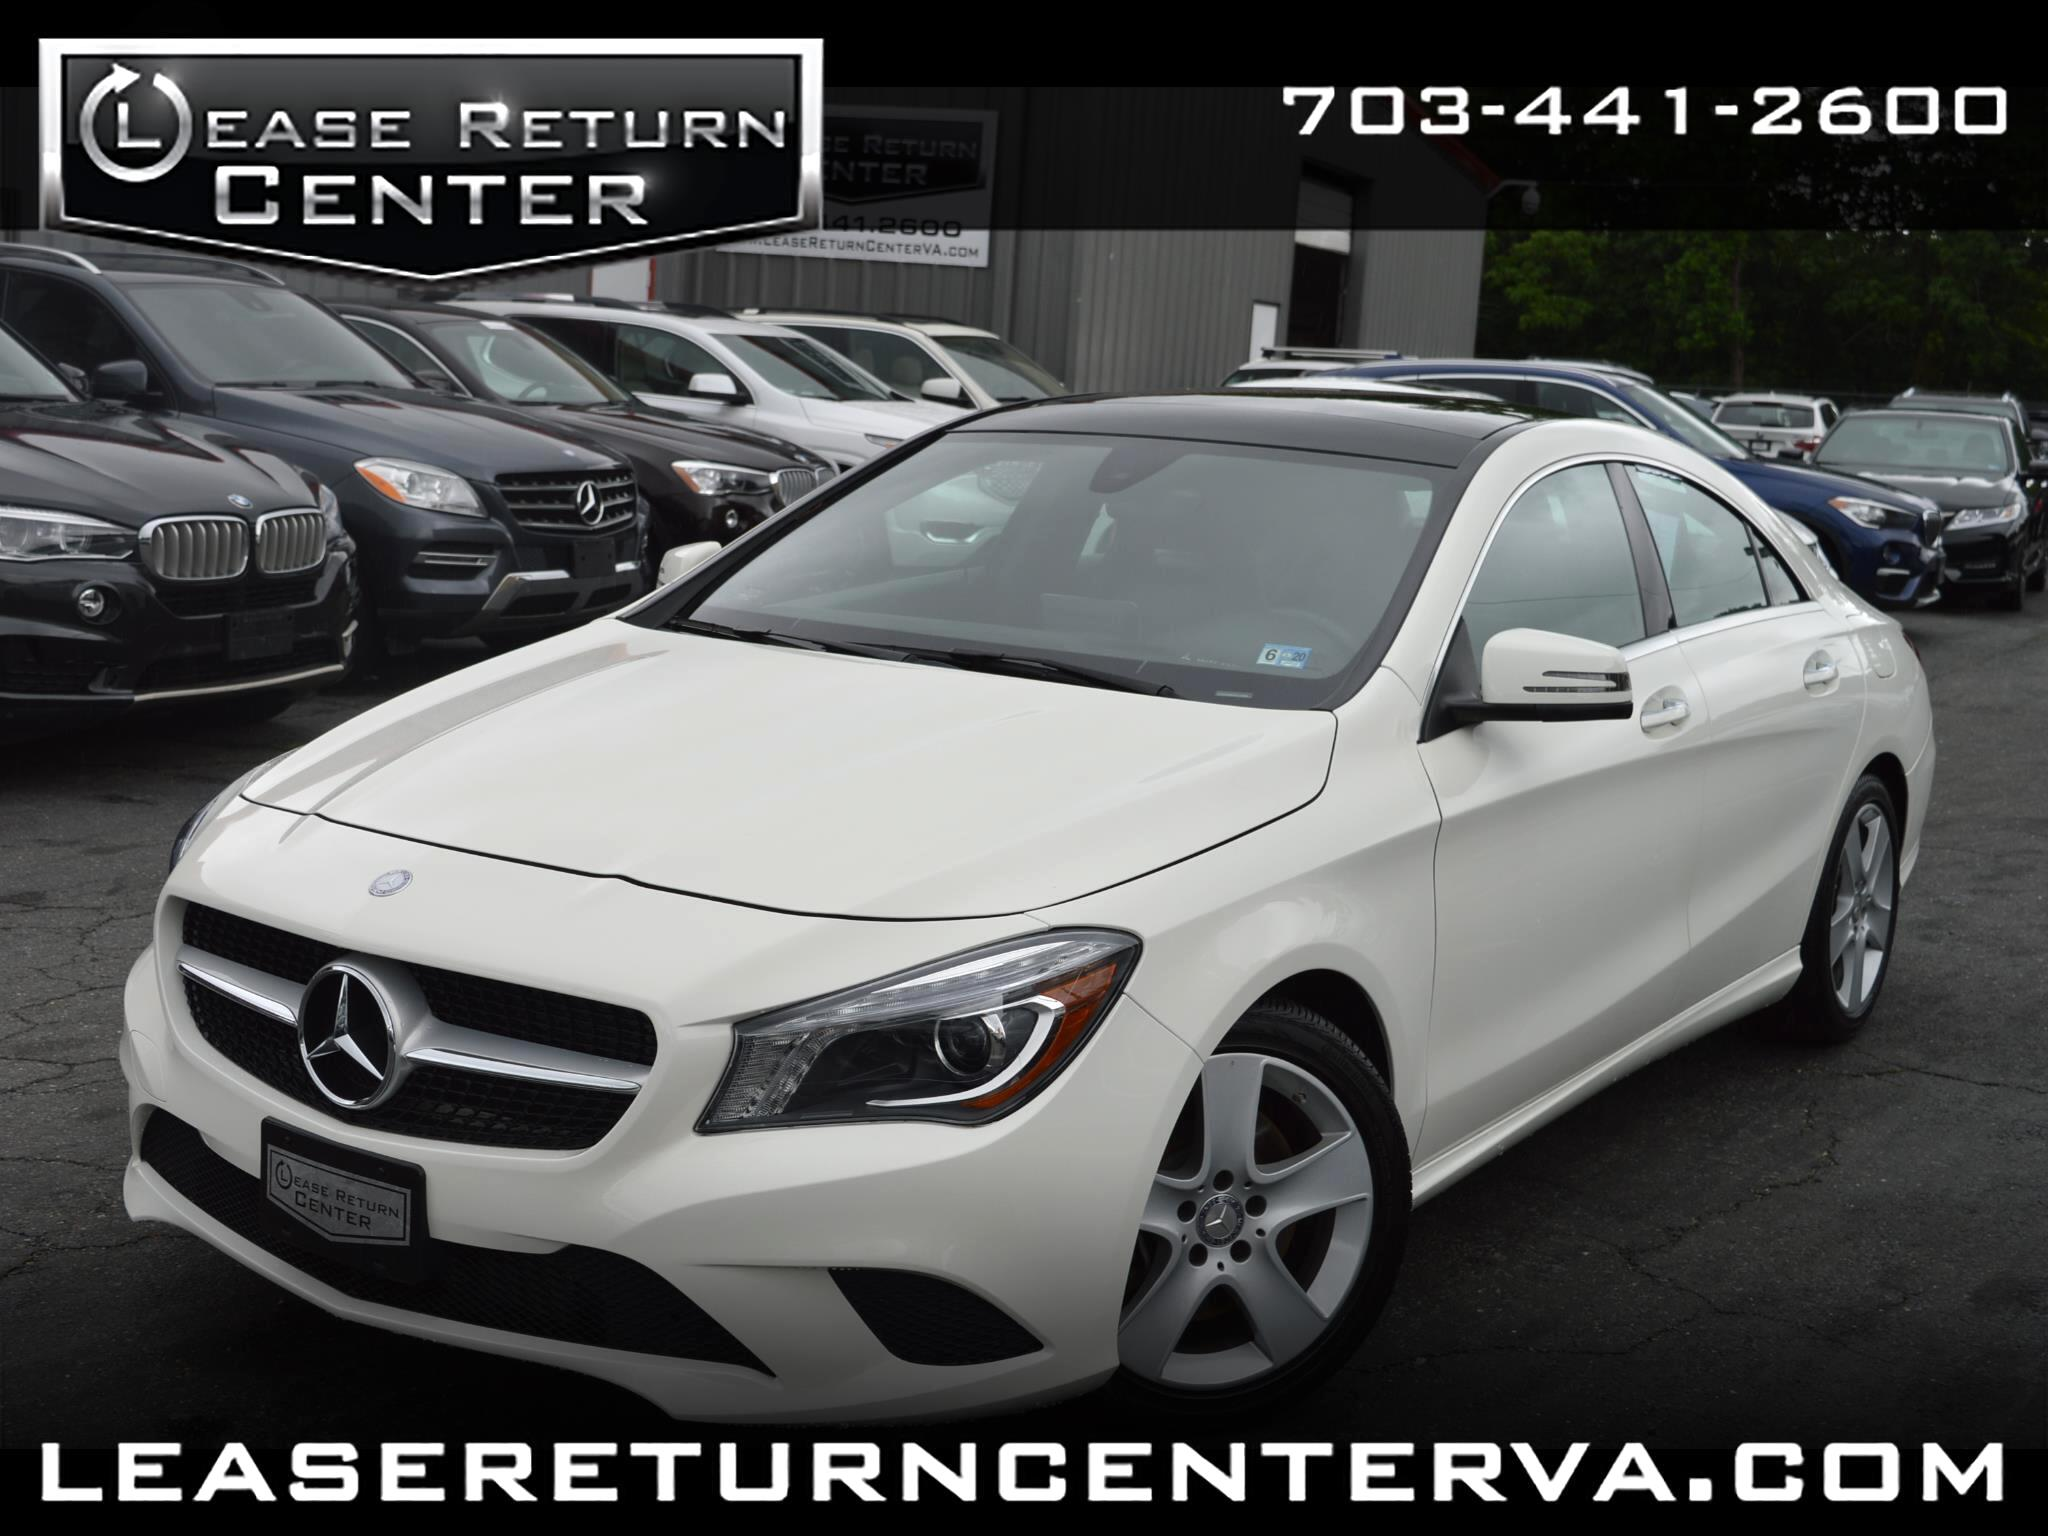 2015 Mercedes-Benz CLA-Class CLA 250 Panoramic Roof With Navigation System